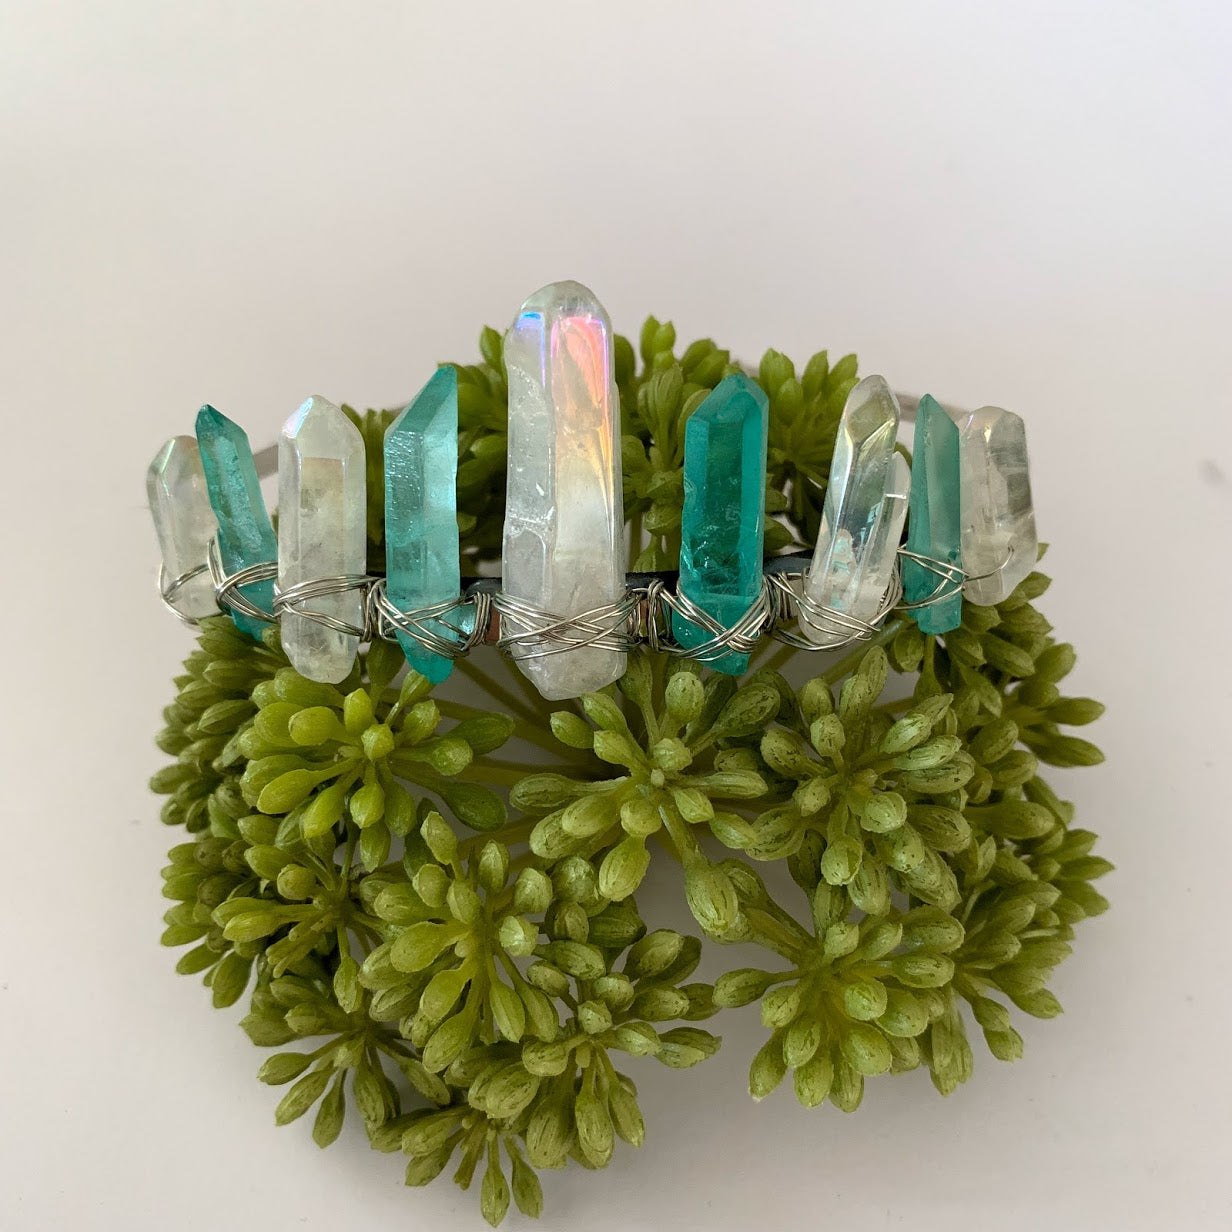 Titanium Quartz Crystal Crown - Aqua and White